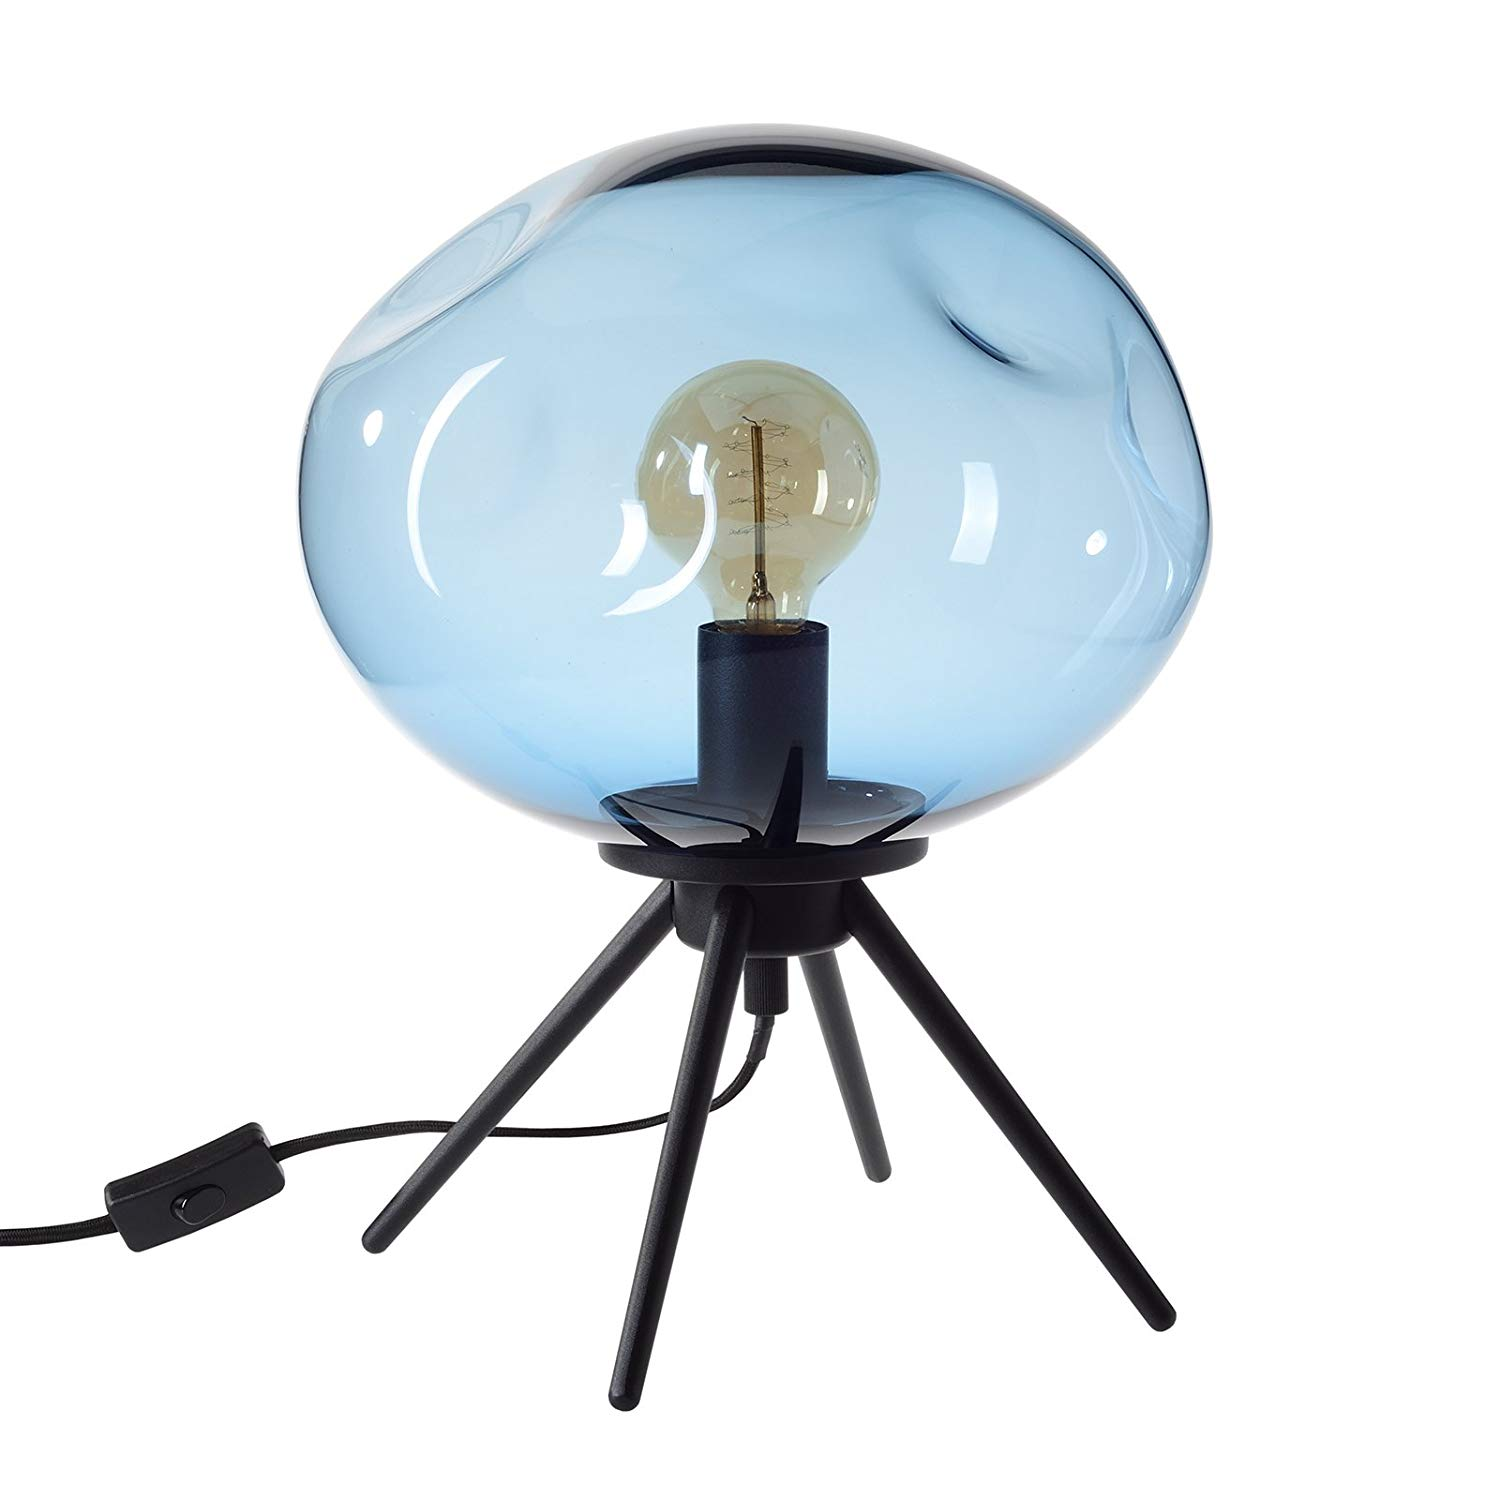 casamotion table lamp handblown glass light contemporary uplight accent lamps side desk blue solid cherry coffee fitted round covers vinyl reclining patio chairs tiny bedside yard